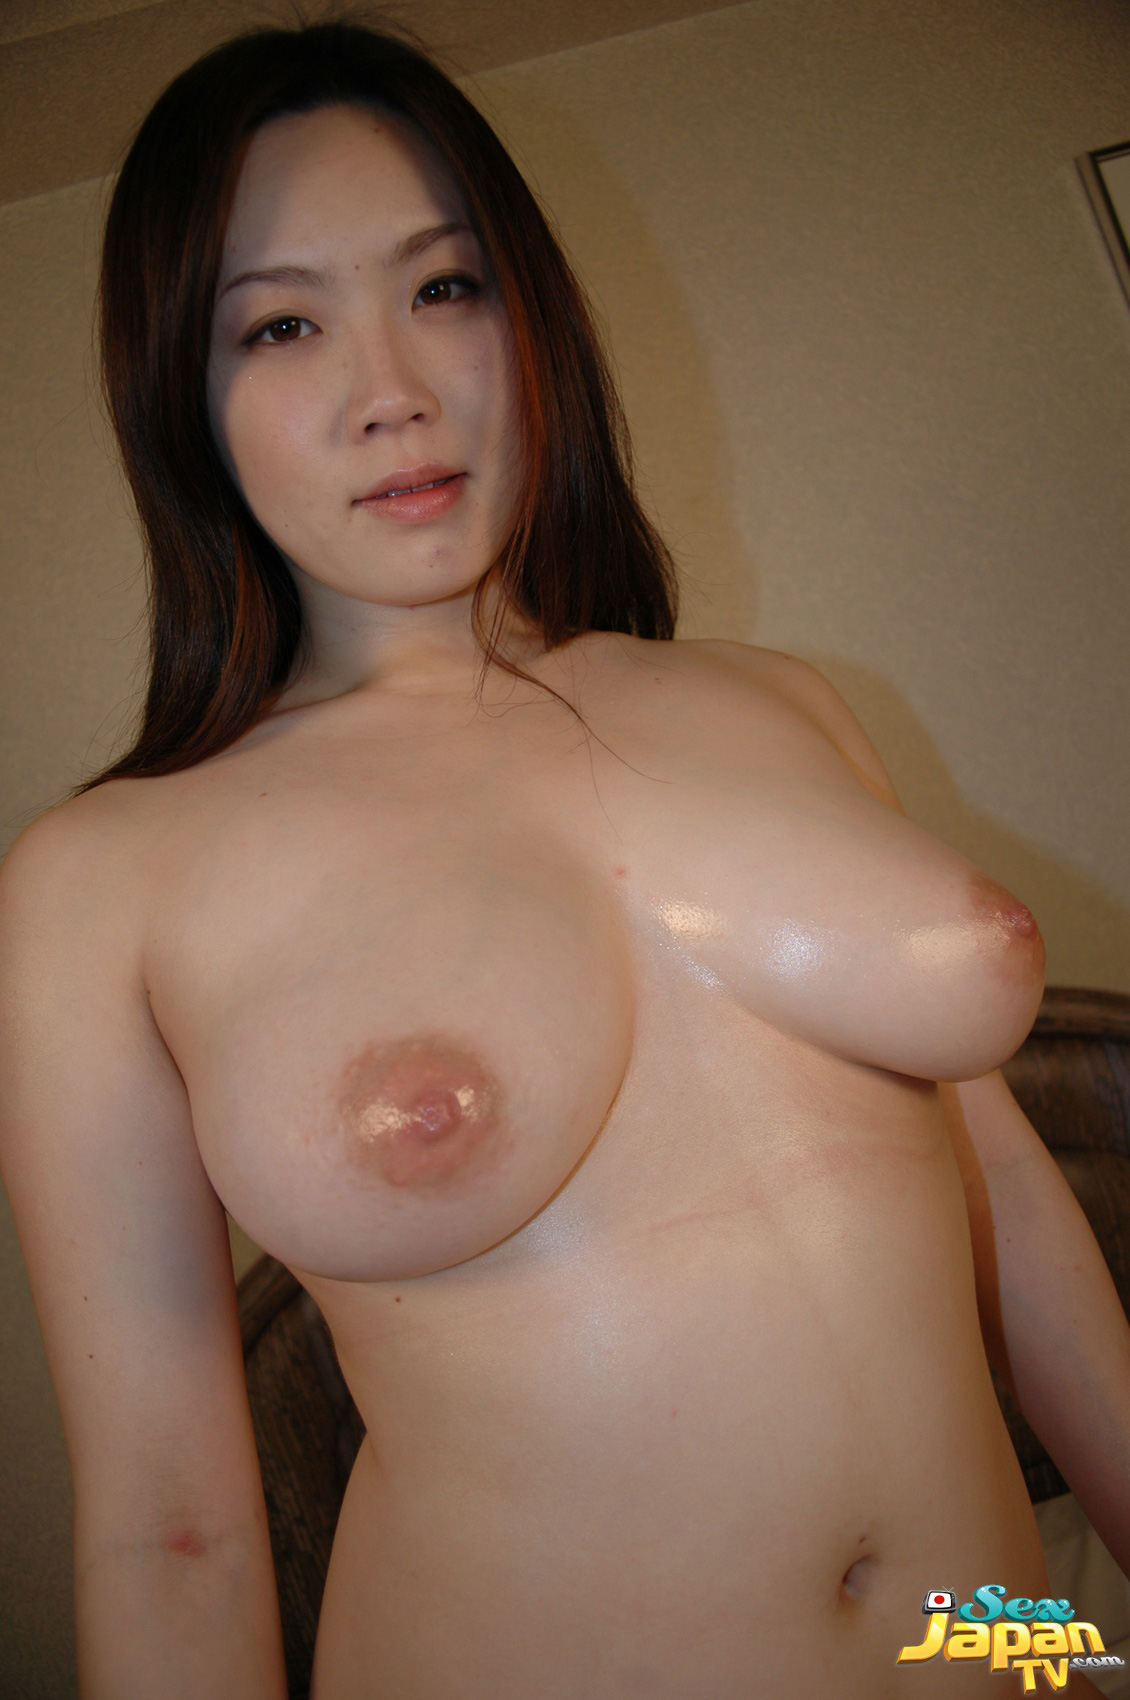 Tits porn huge asian